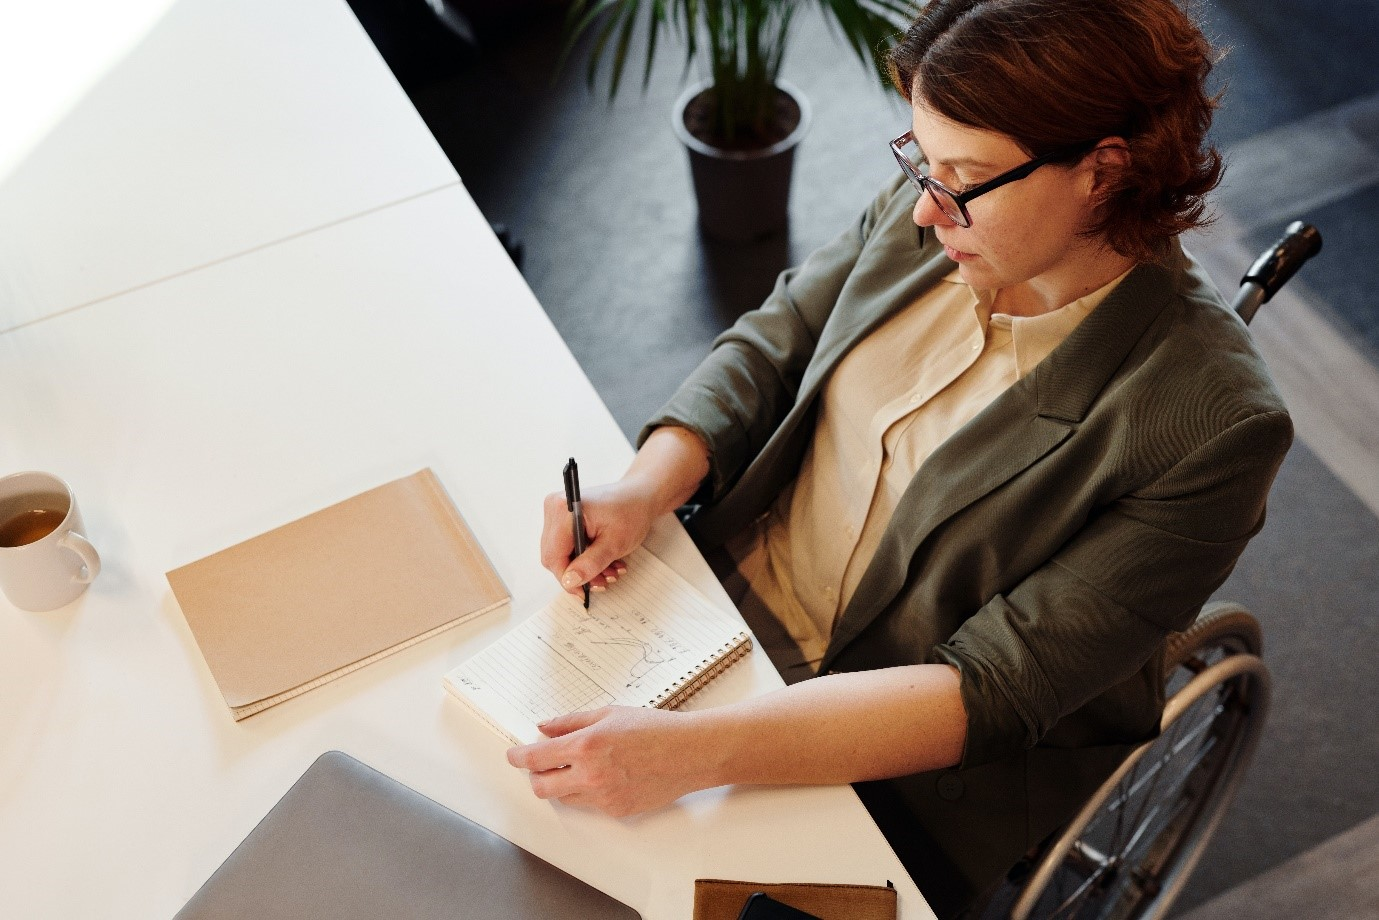 Adapting to Disability and Dealing with Discrimination in the Workplace